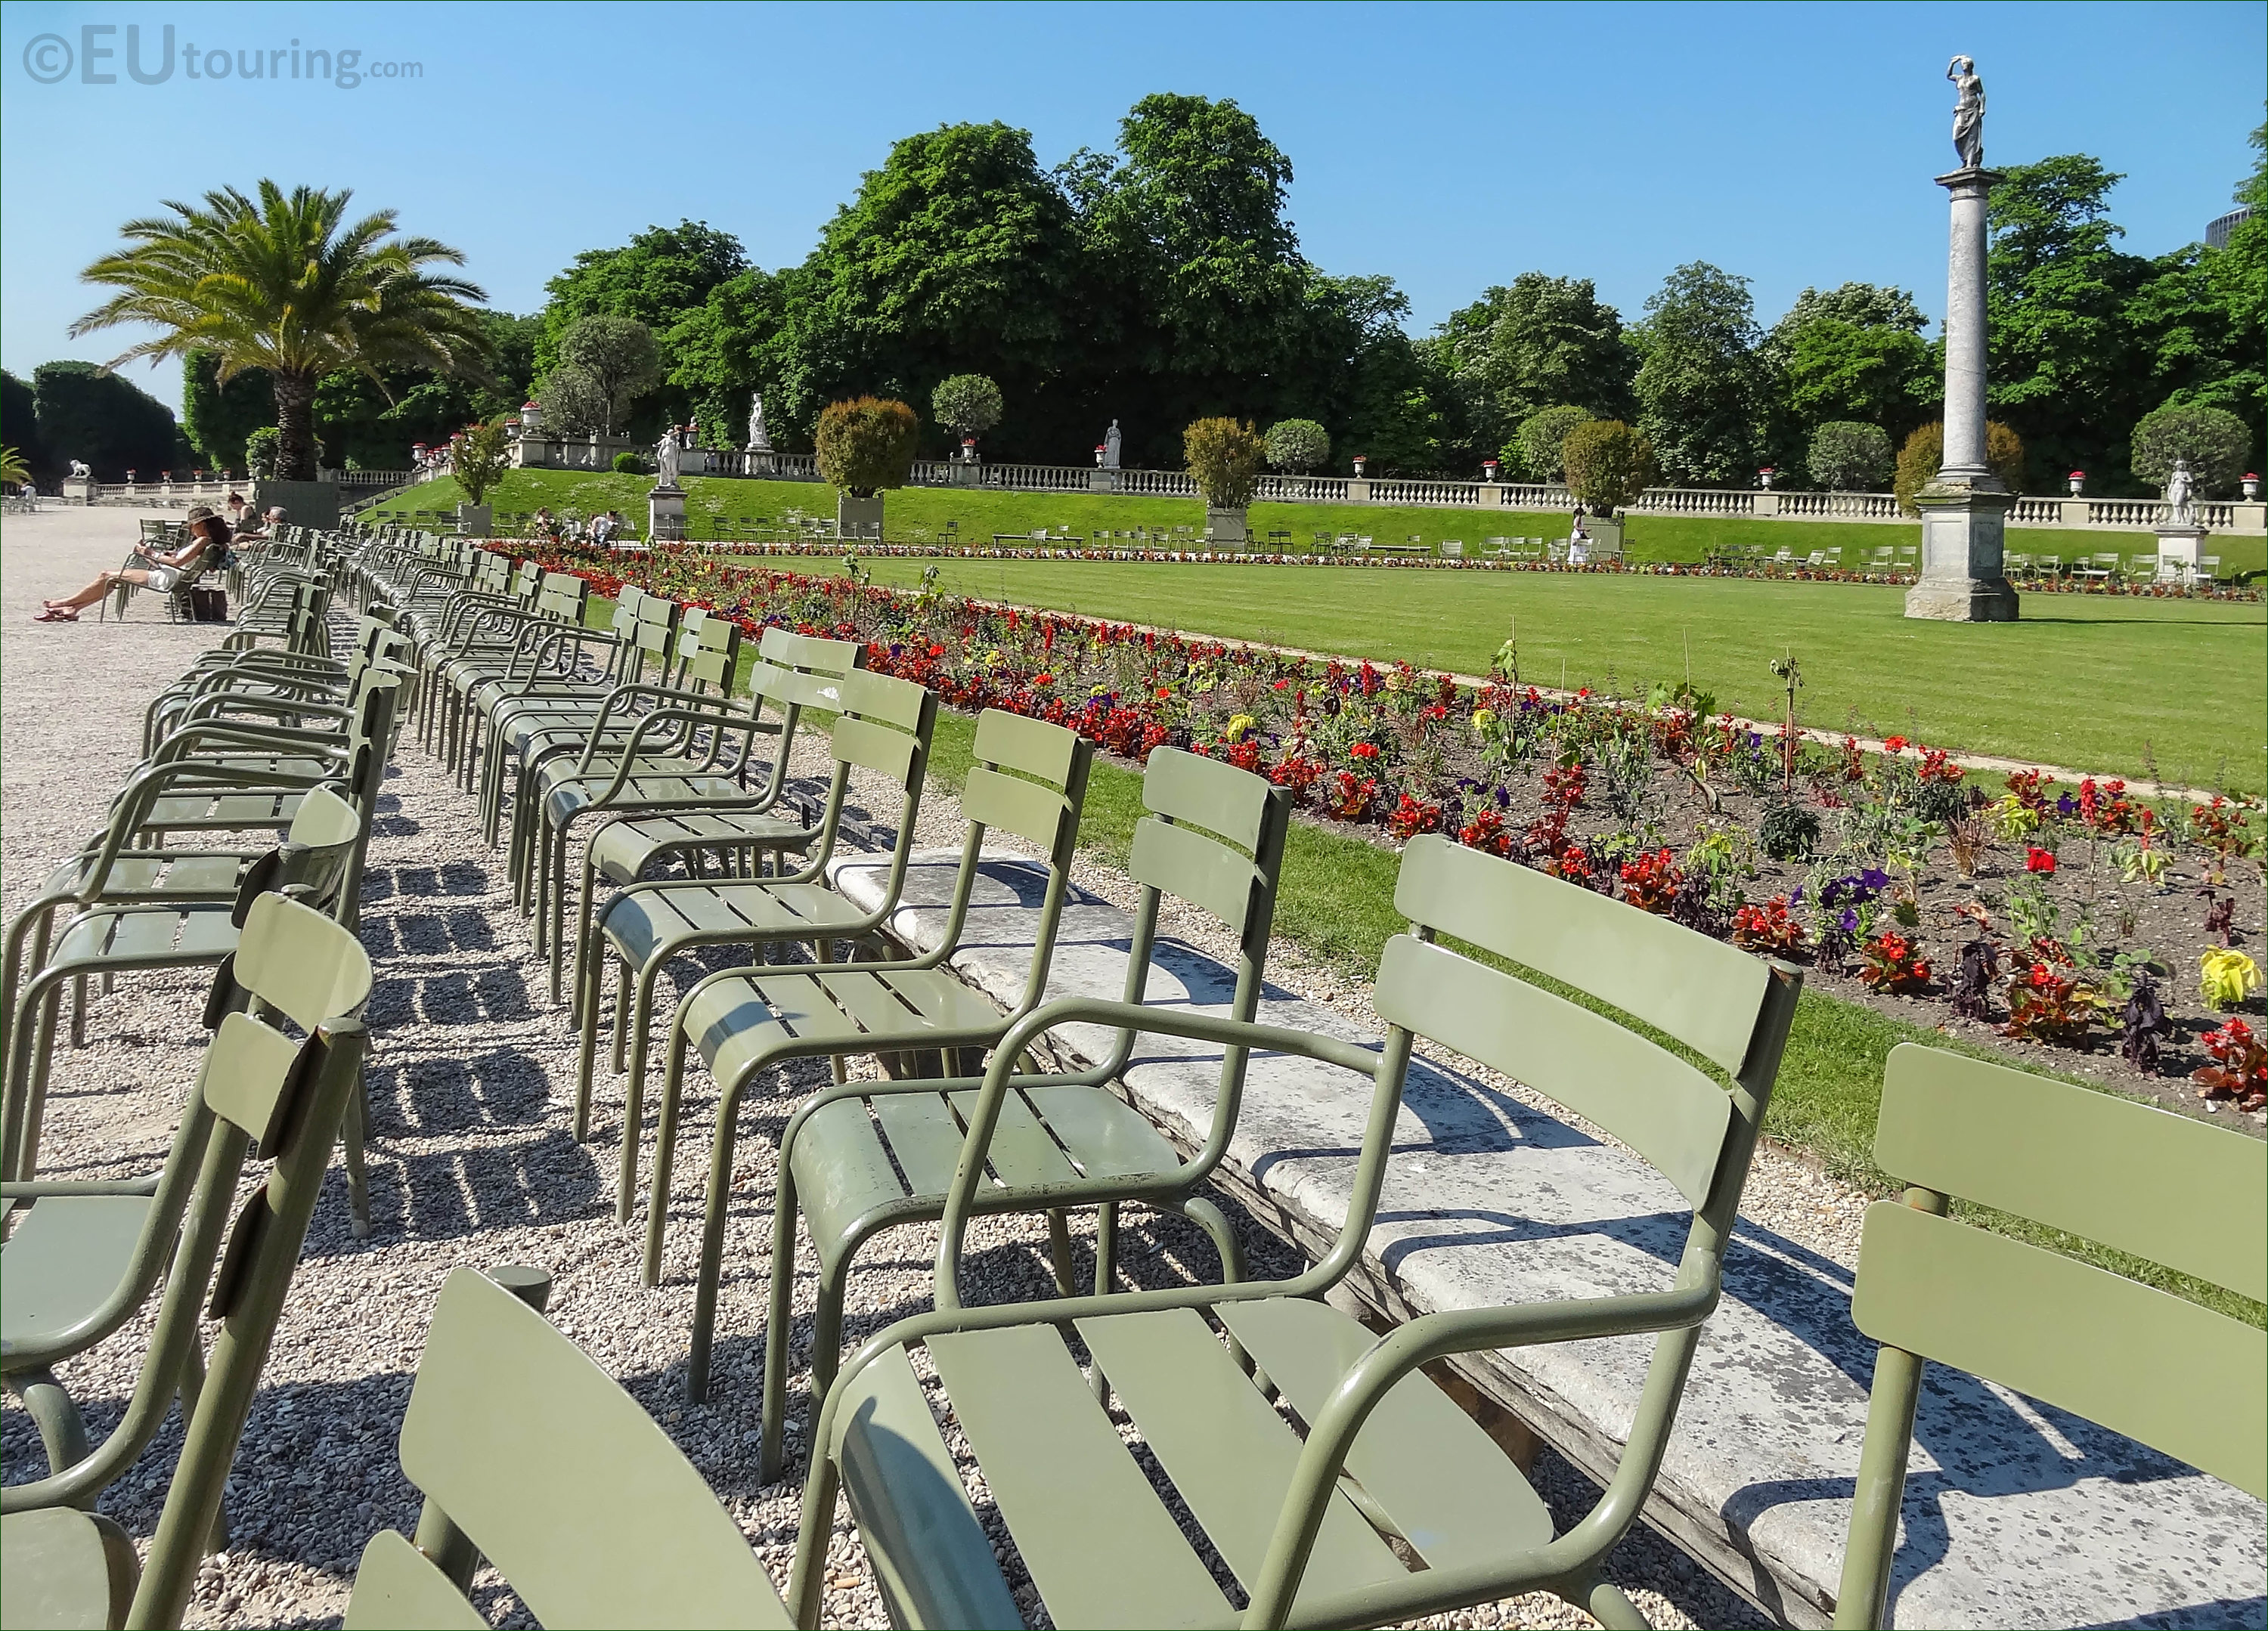 Photos of jardin du luxembourg public gardens in paris for Paris jardin